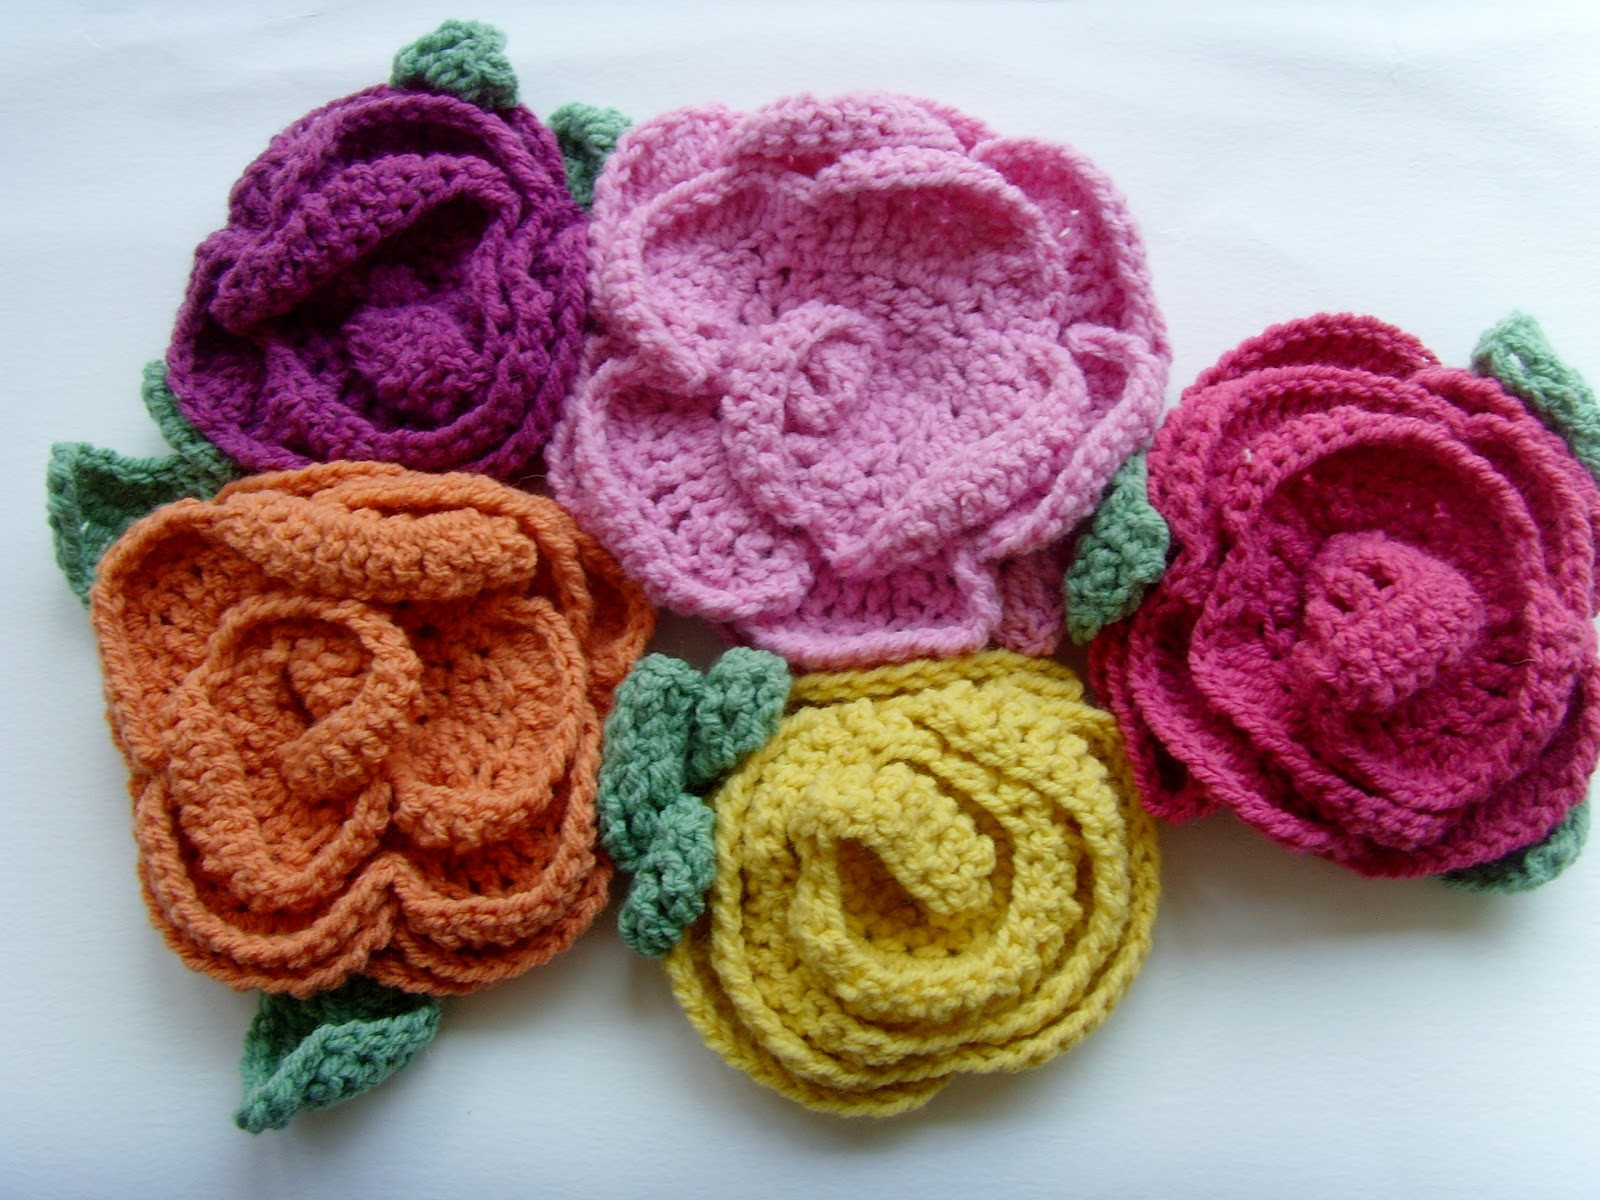 Free Crochet Flower Patterns Awesome Bee and Buzz Big Crochet Flowers Of Amazing 42 Images Free Crochet Flower Patterns